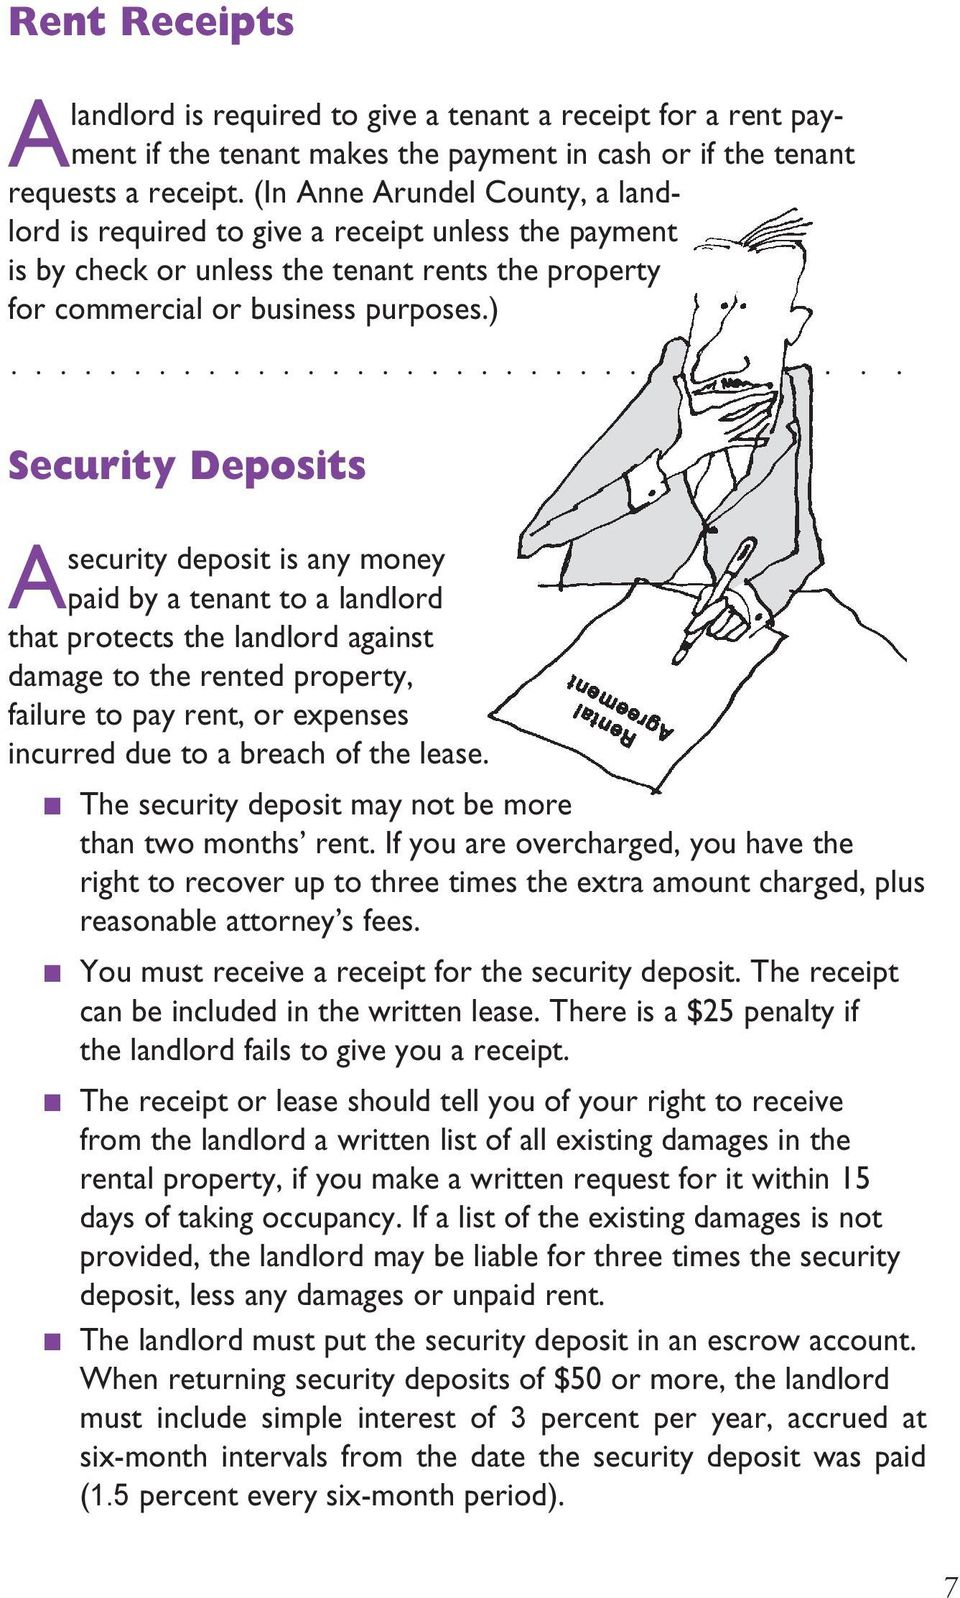 ) Security Deposits Asecurity deposit is any money paid by a tenant to a landlord that protects the landlord against damage to the rented property, failure to pay rent, or expenses incurred due to a